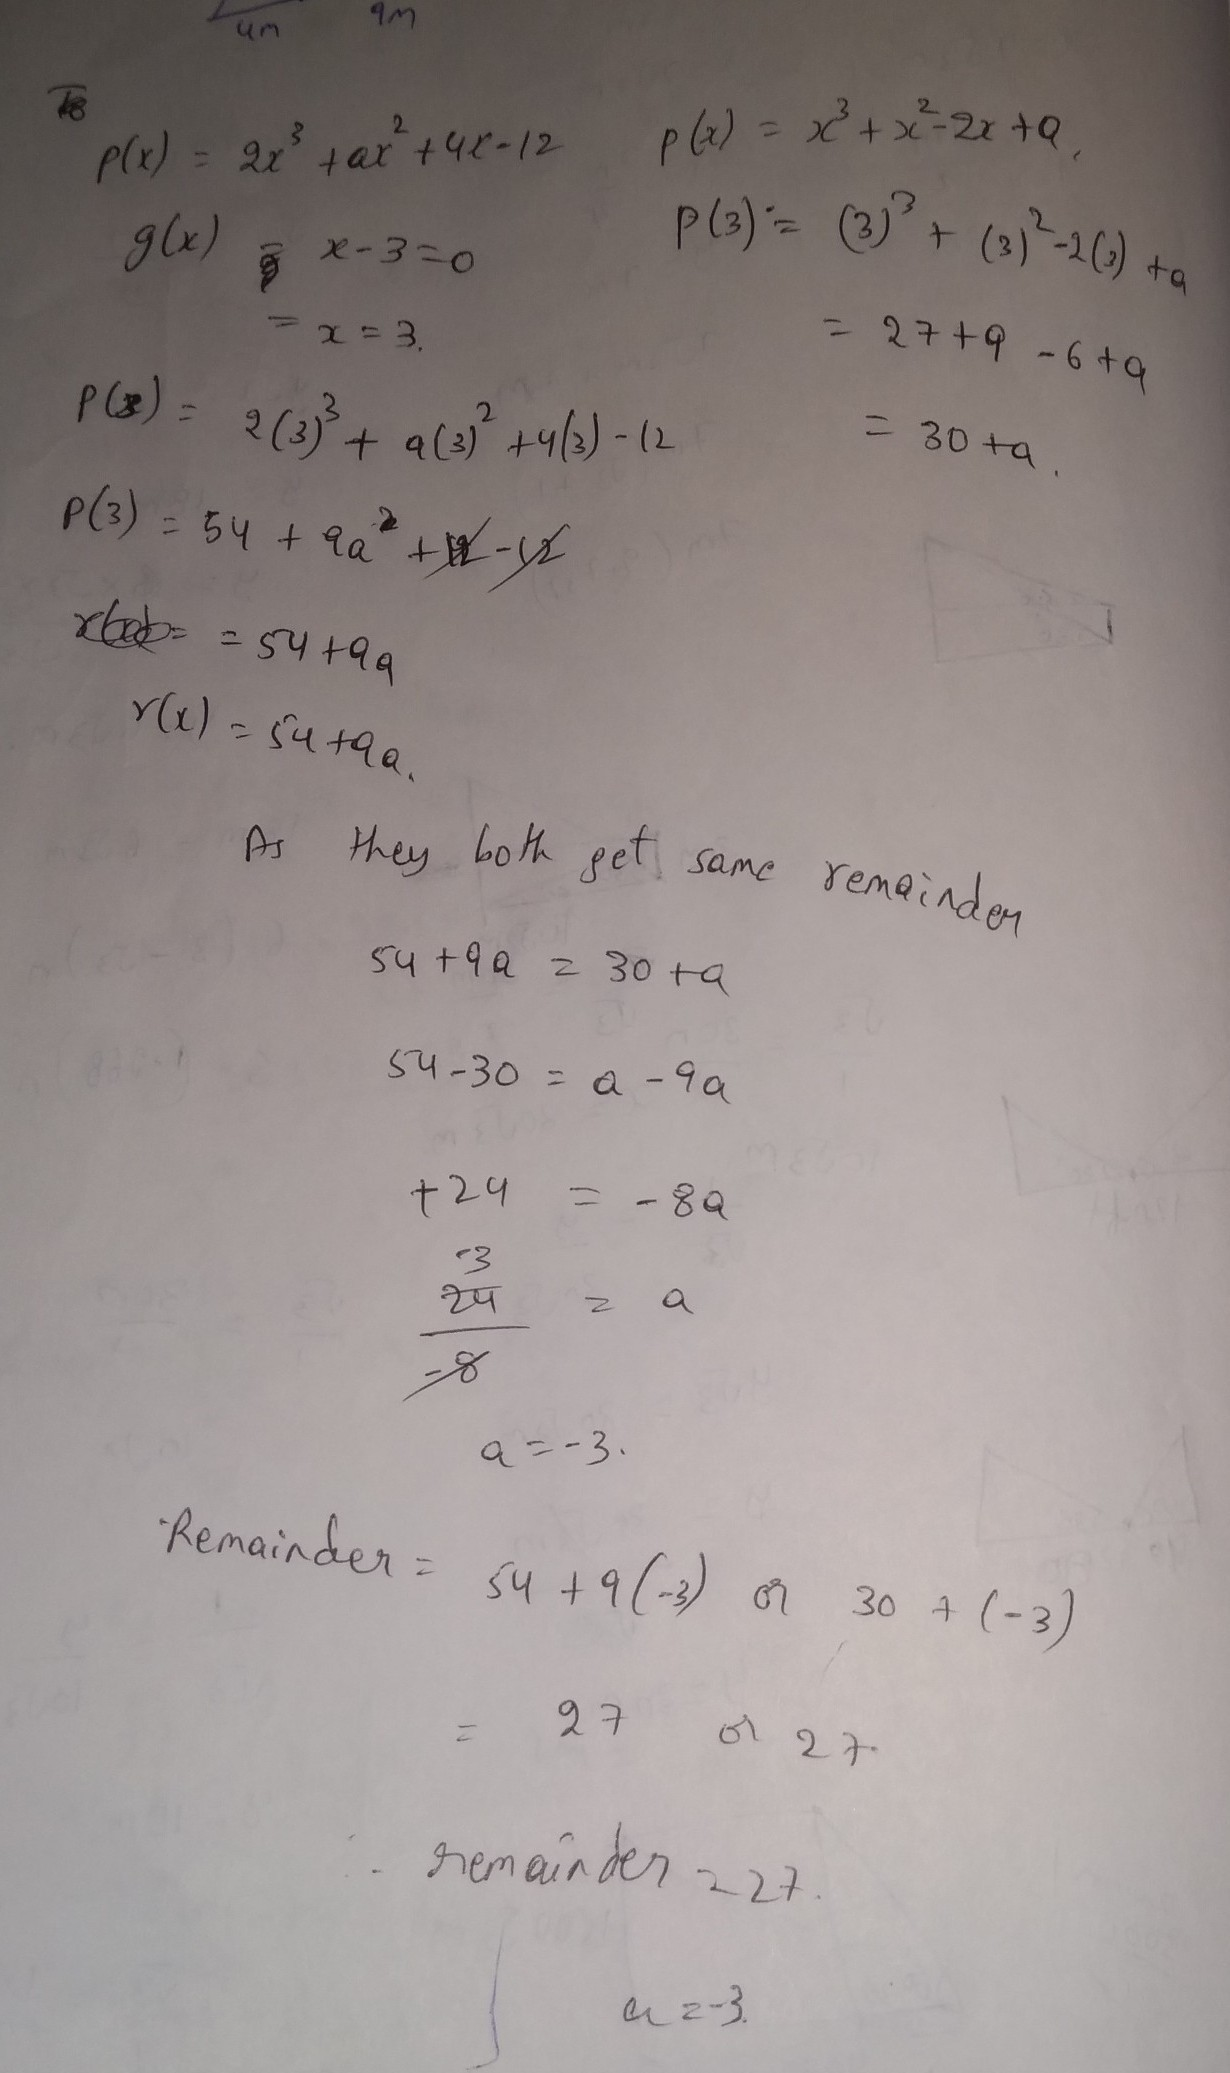 If Two Polynomials 2x3+ax2++4x-12 And X3+x2-2x+a Leave The